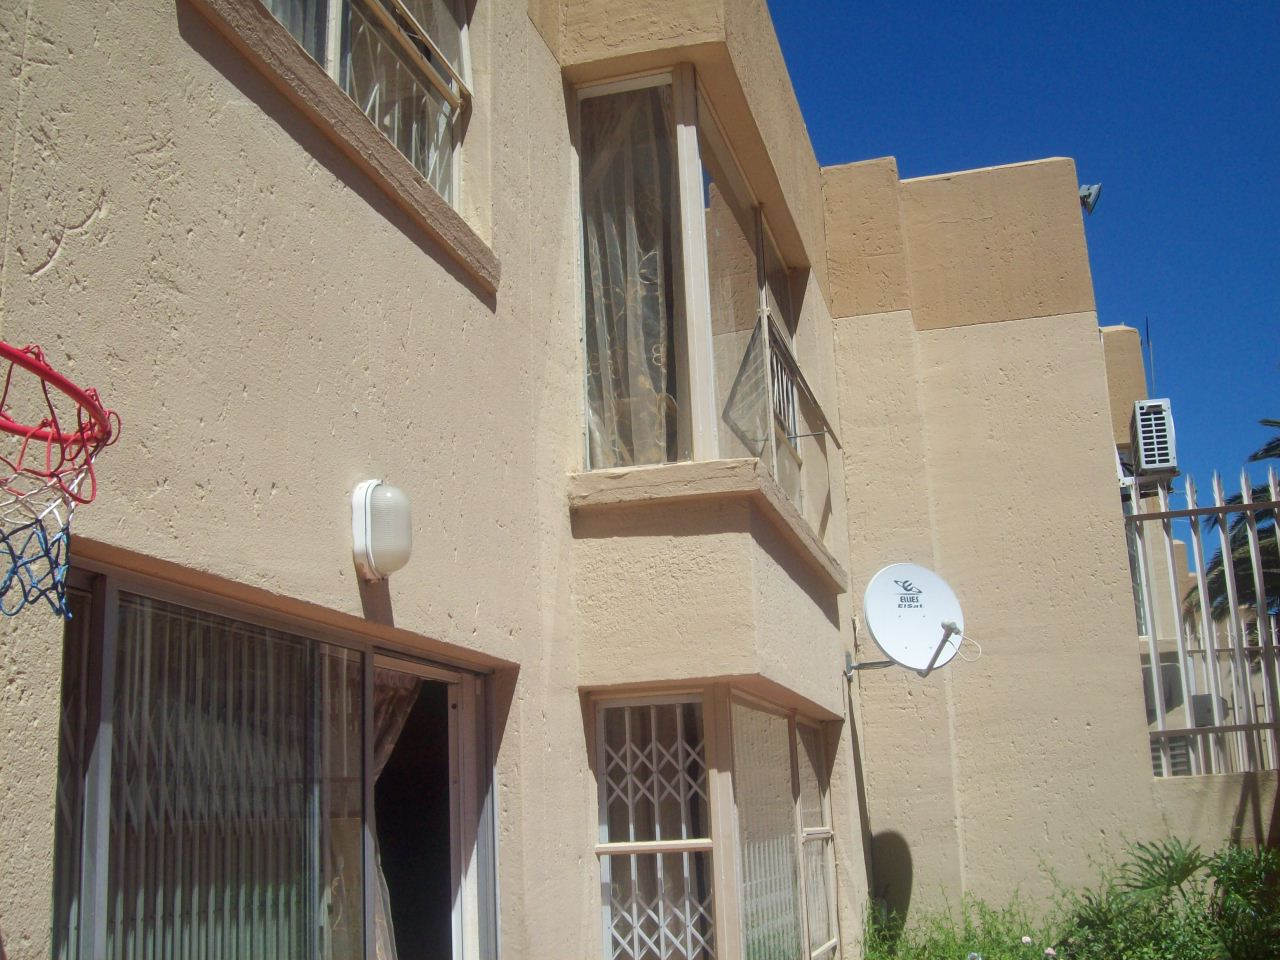 3 Bedroom Townhouse for sale in Bassonia ENT0071278 : photo#51